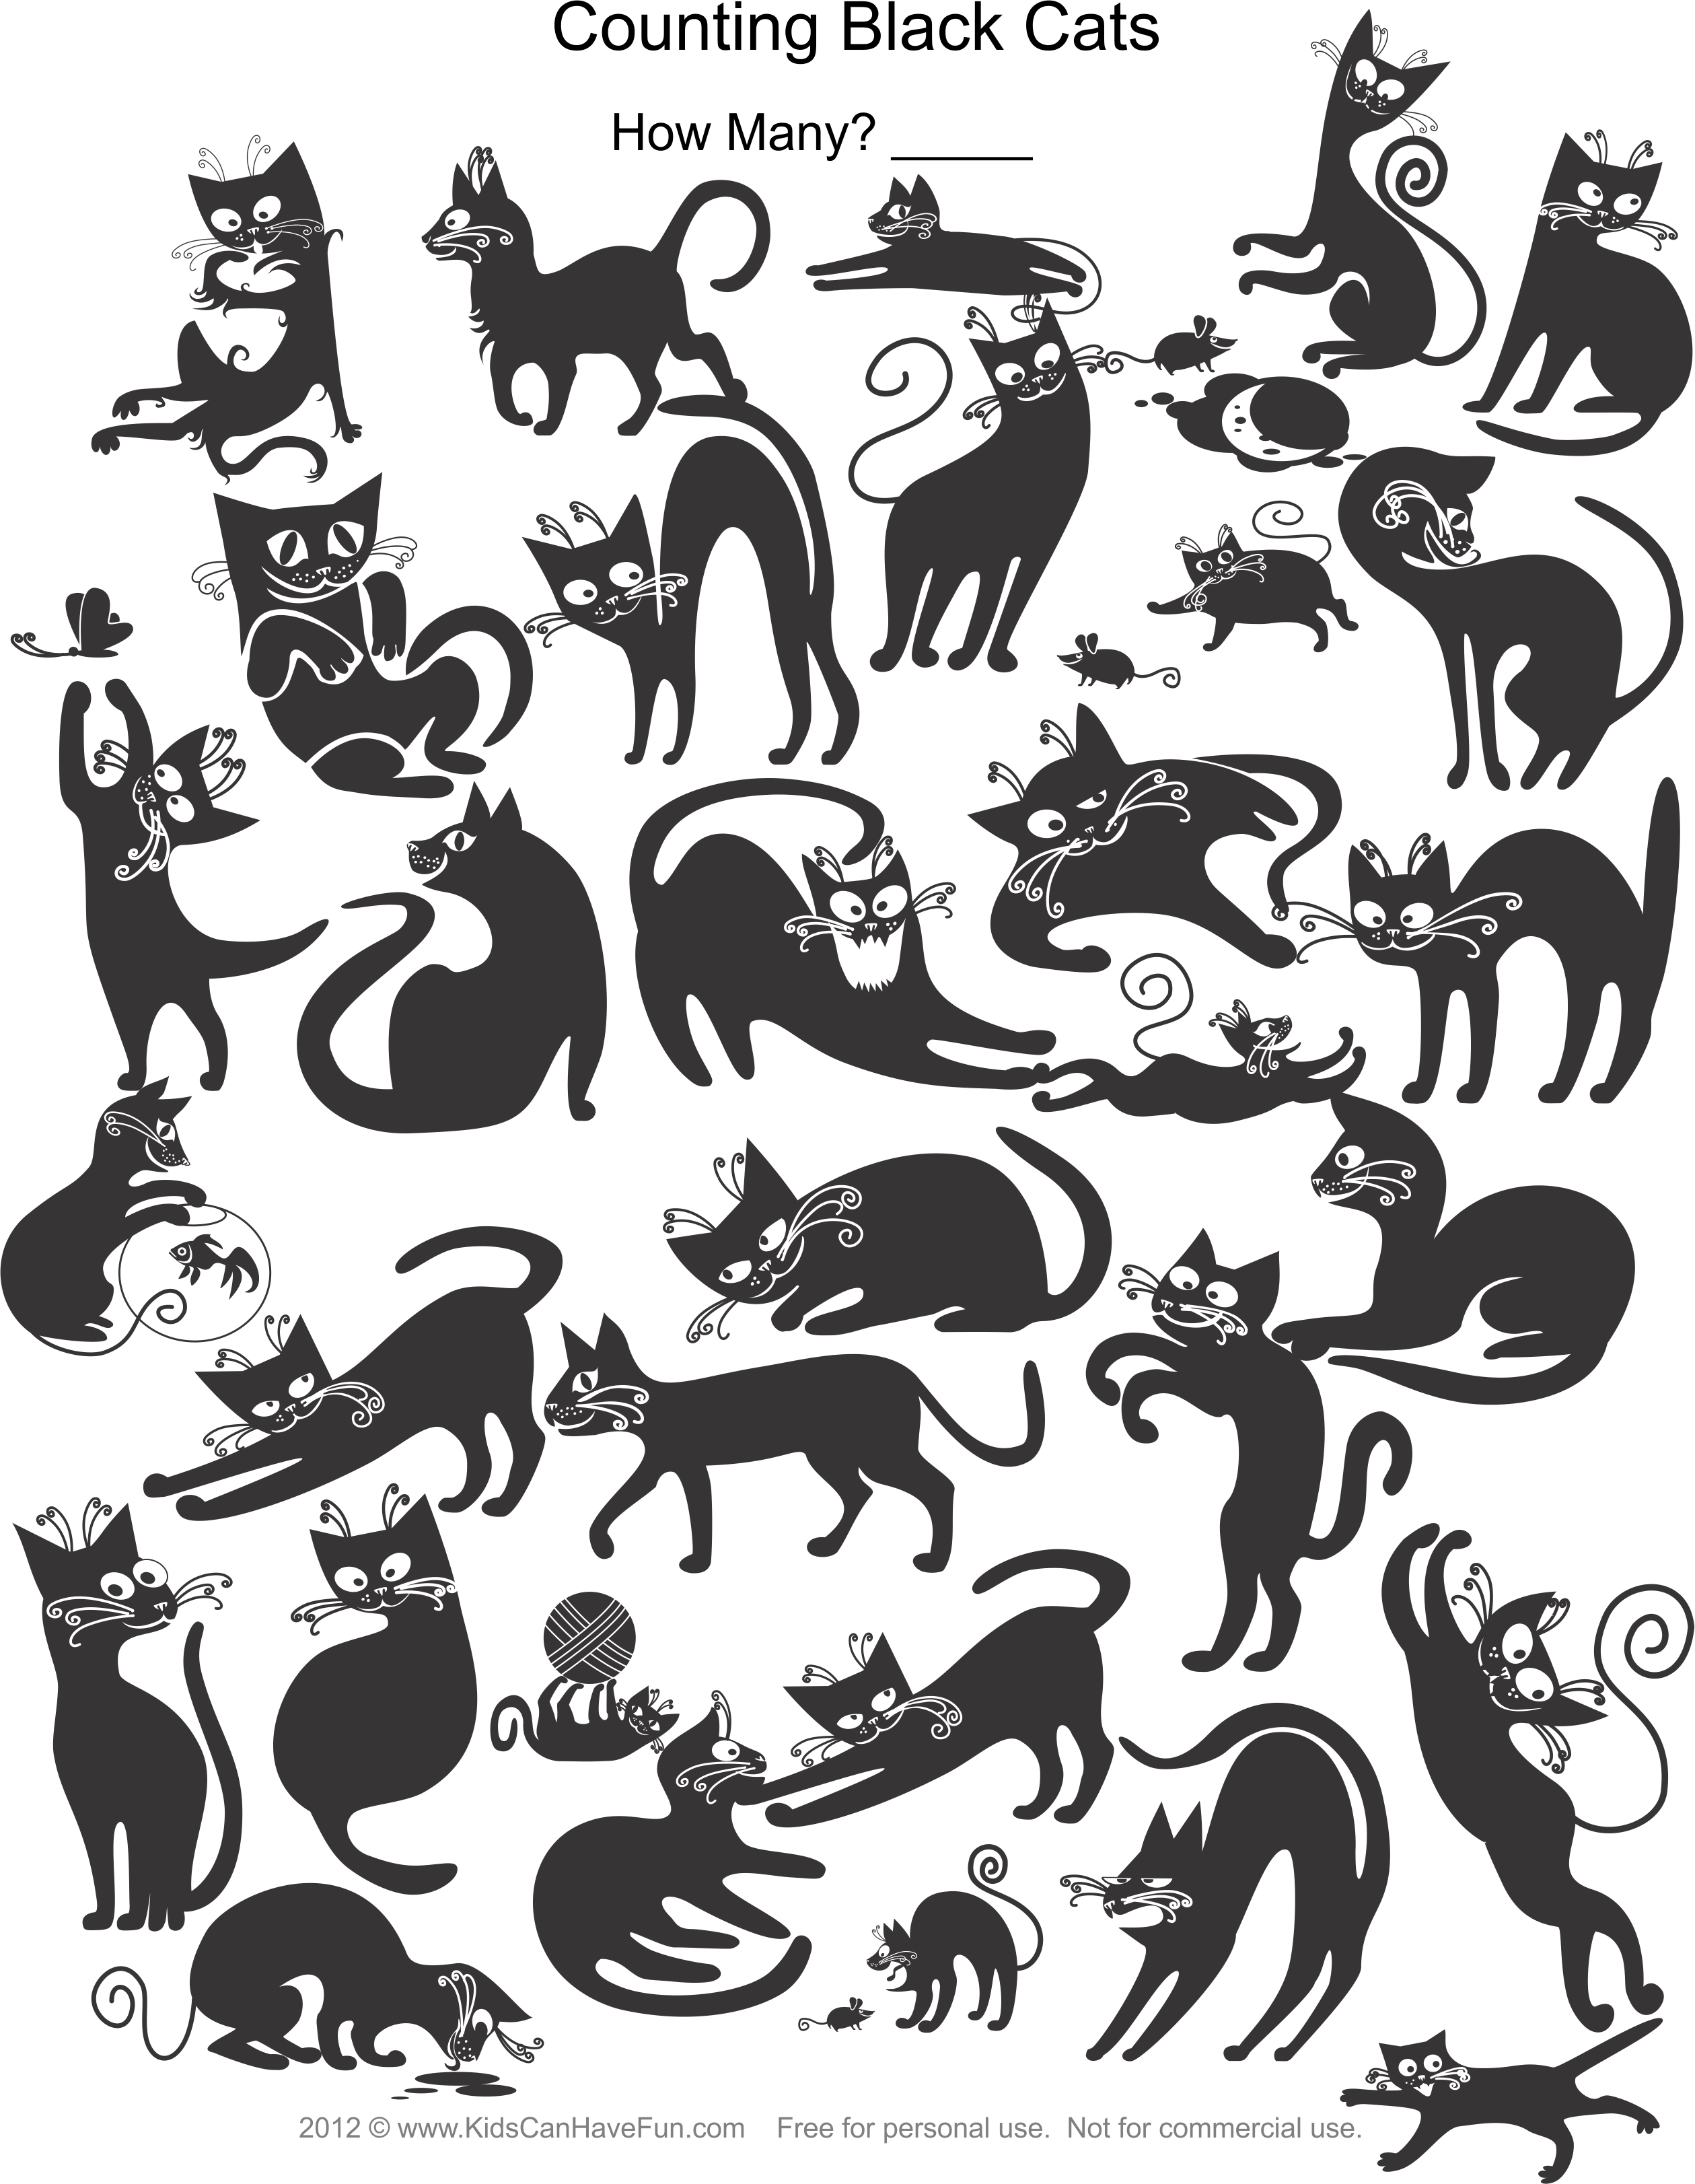 Counting Black Cats Worksheet Dscanhavefun